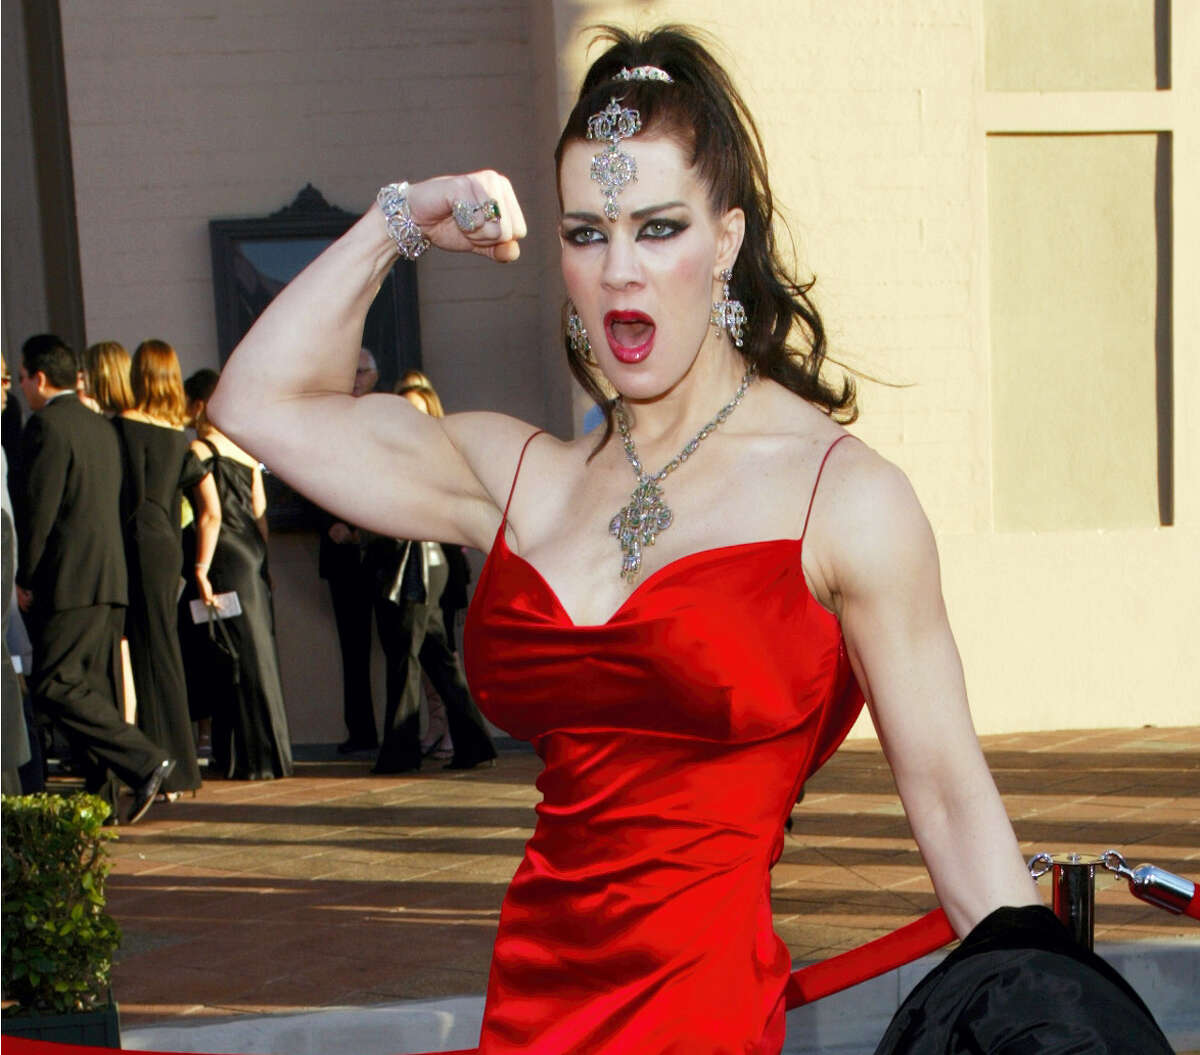 In this Nov. 16, 2003, file photo, Joanie Laurer, former pro wrestler known as Chyna, flexes her bicep as she arrives at the 31st annual American Music Awards, in Los Angeles. Chyna, the WWE star who became one of the best known and most popular female professional wrestlers in history in the late 1990s, has died at age 45. Los Angeles County coroner's Lt. Larry Dietz says Chyna, whose real name is Joan Marie Laurer, was found dead in Redondo Beach on Wednesday, April 20, 2016.